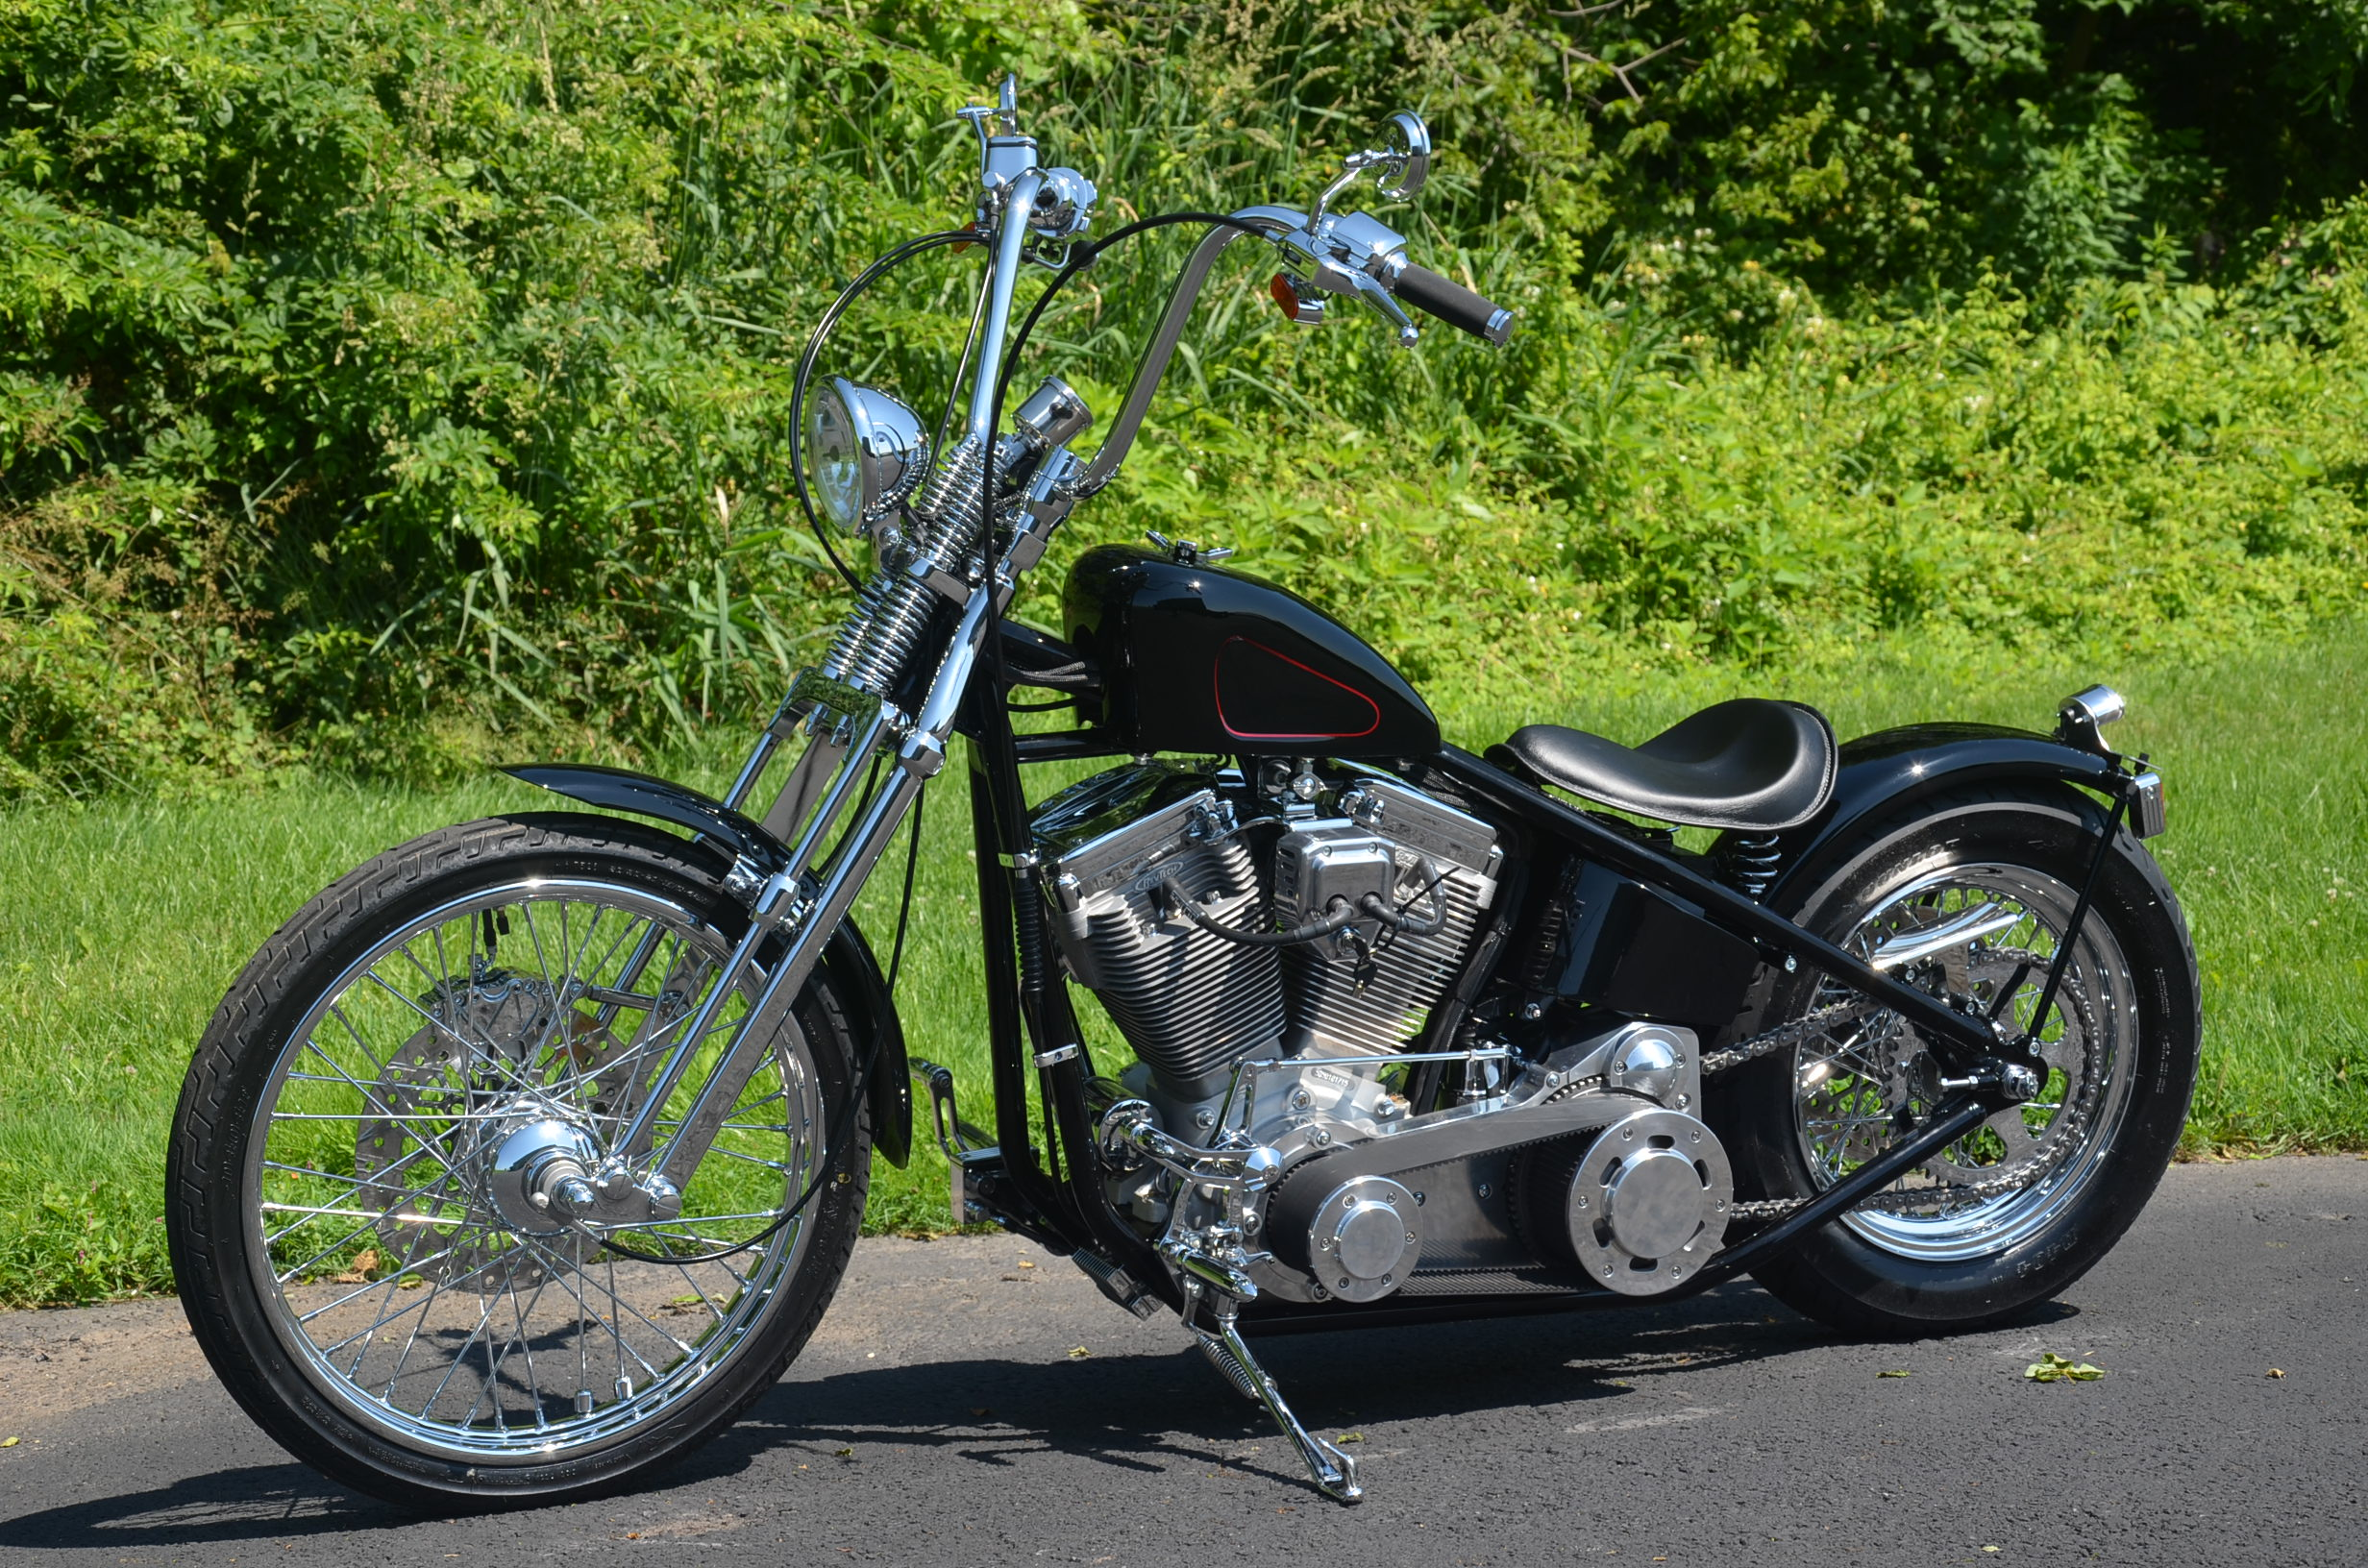 2016 american classic motors rigid bobber for sale on 2040 for American classic motors for sale